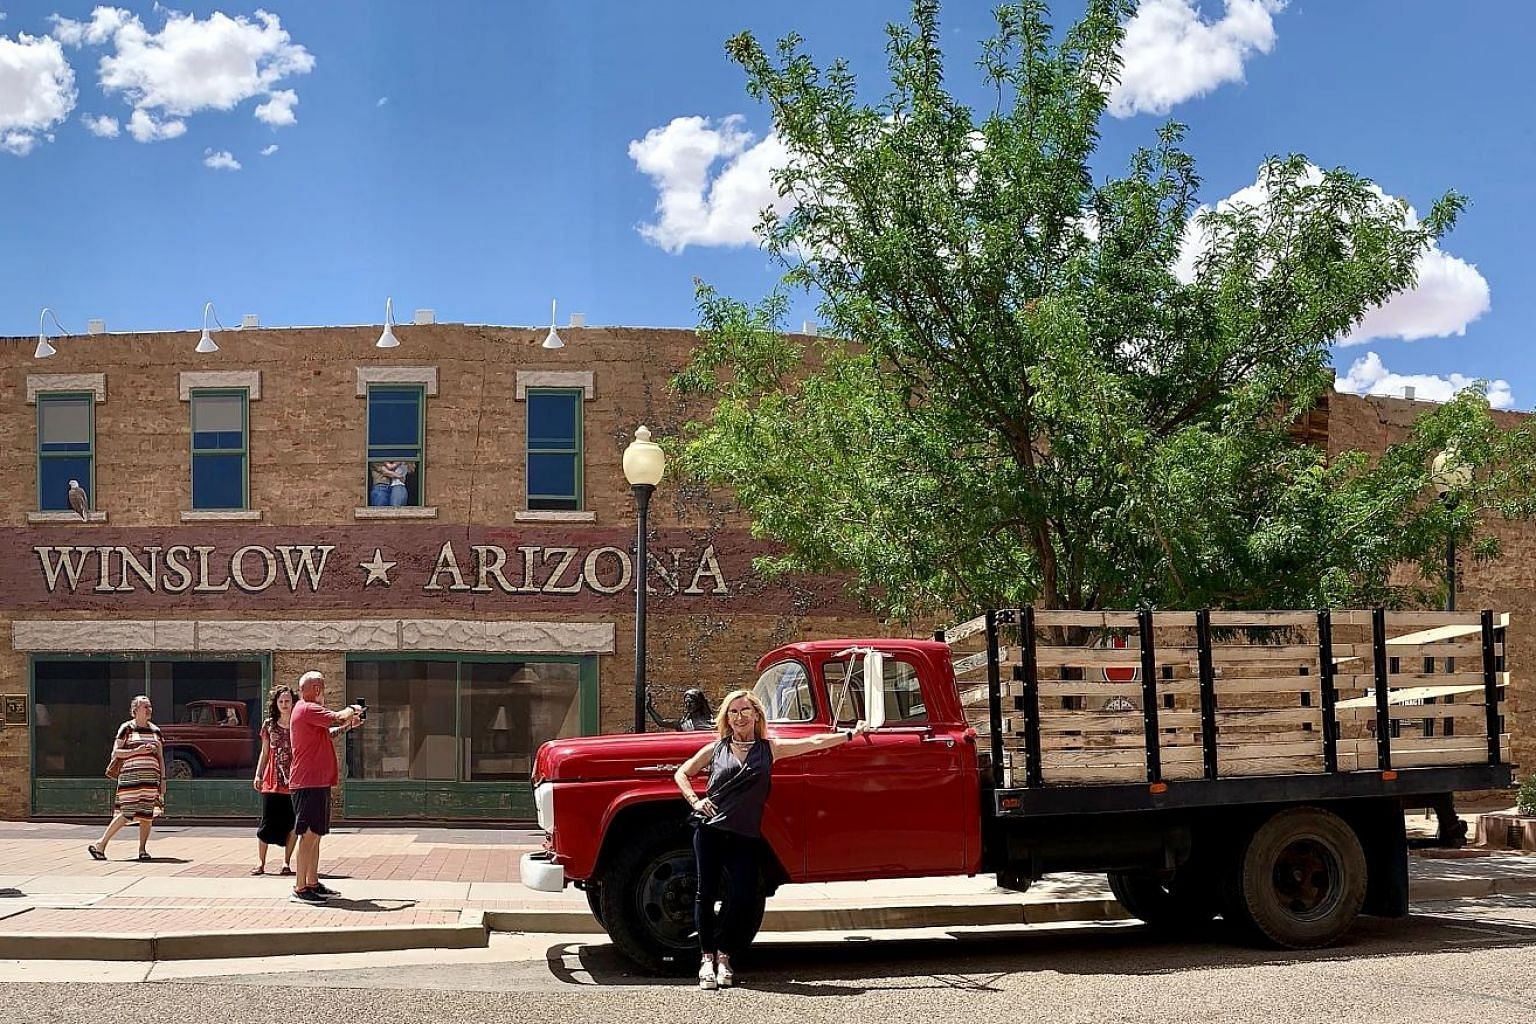 Standin' on the Corner in Winslow, Arizona, is a tribute to The Eagles' hit, Take It Easy.